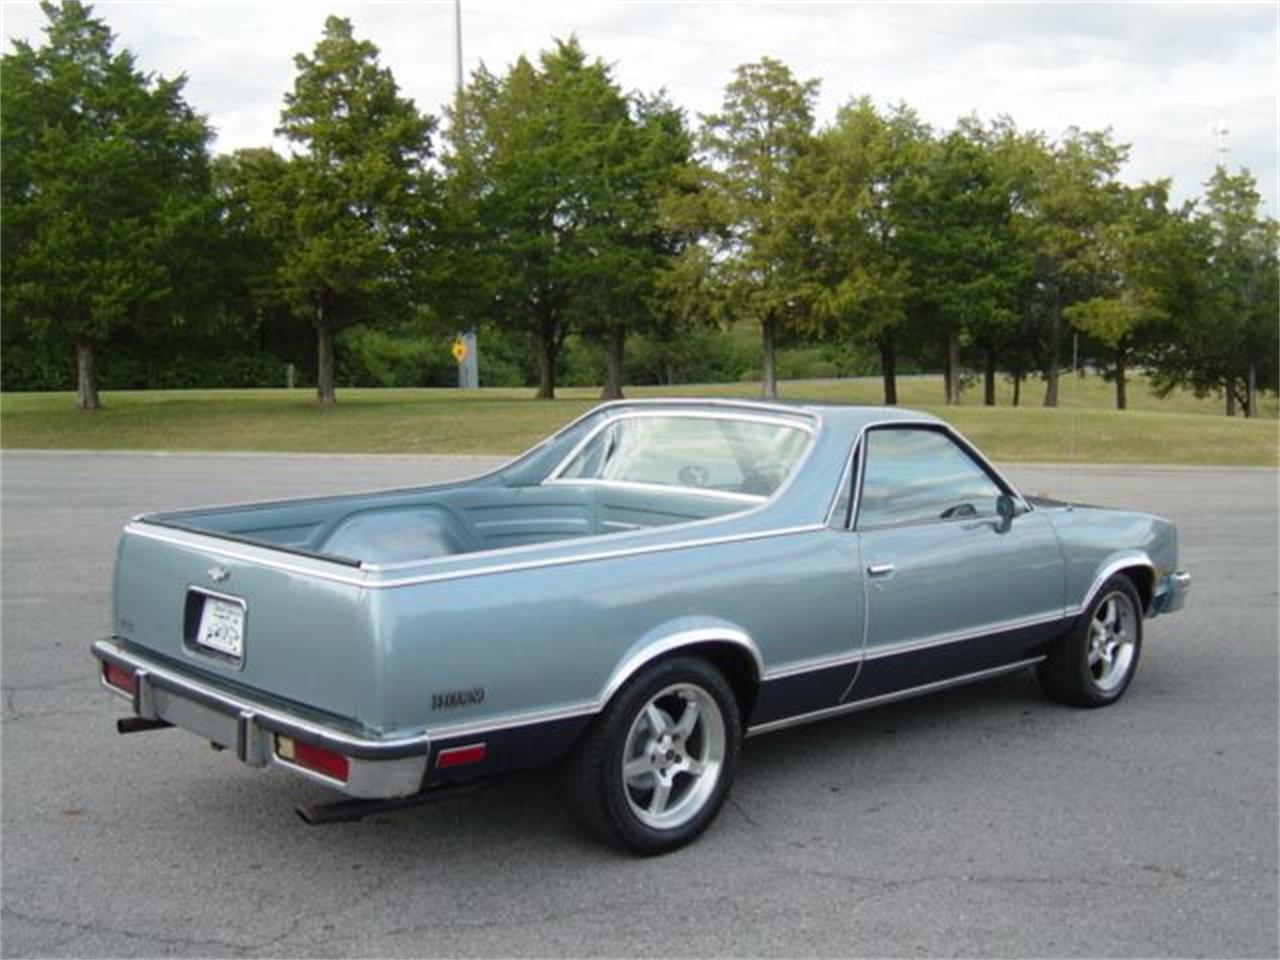 1985 Chevrolet El Camino (CC-1411962) for sale in Hendersonville, Tennessee